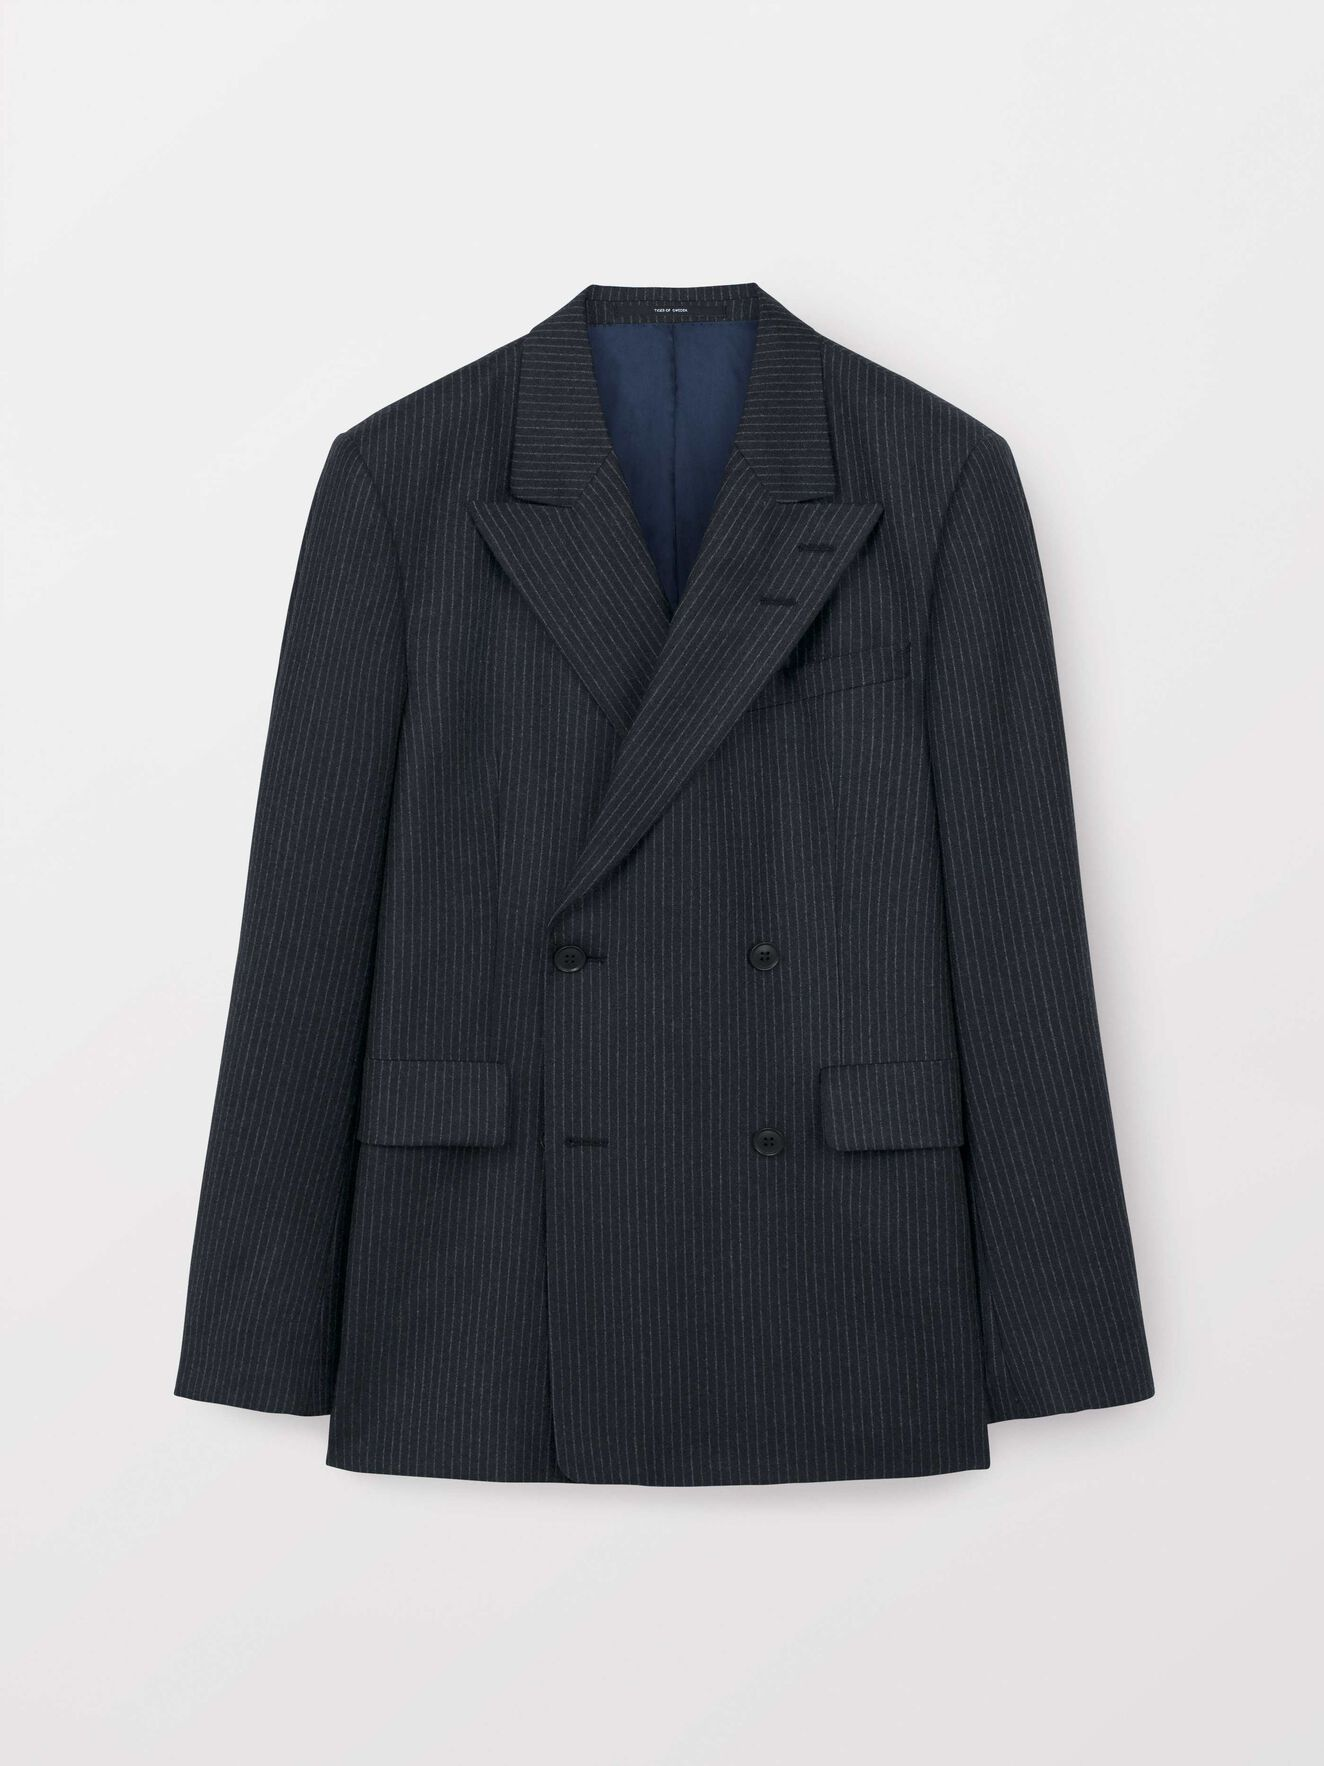 1903 Db Blazer in Med Grey Mel from Tiger of Sweden